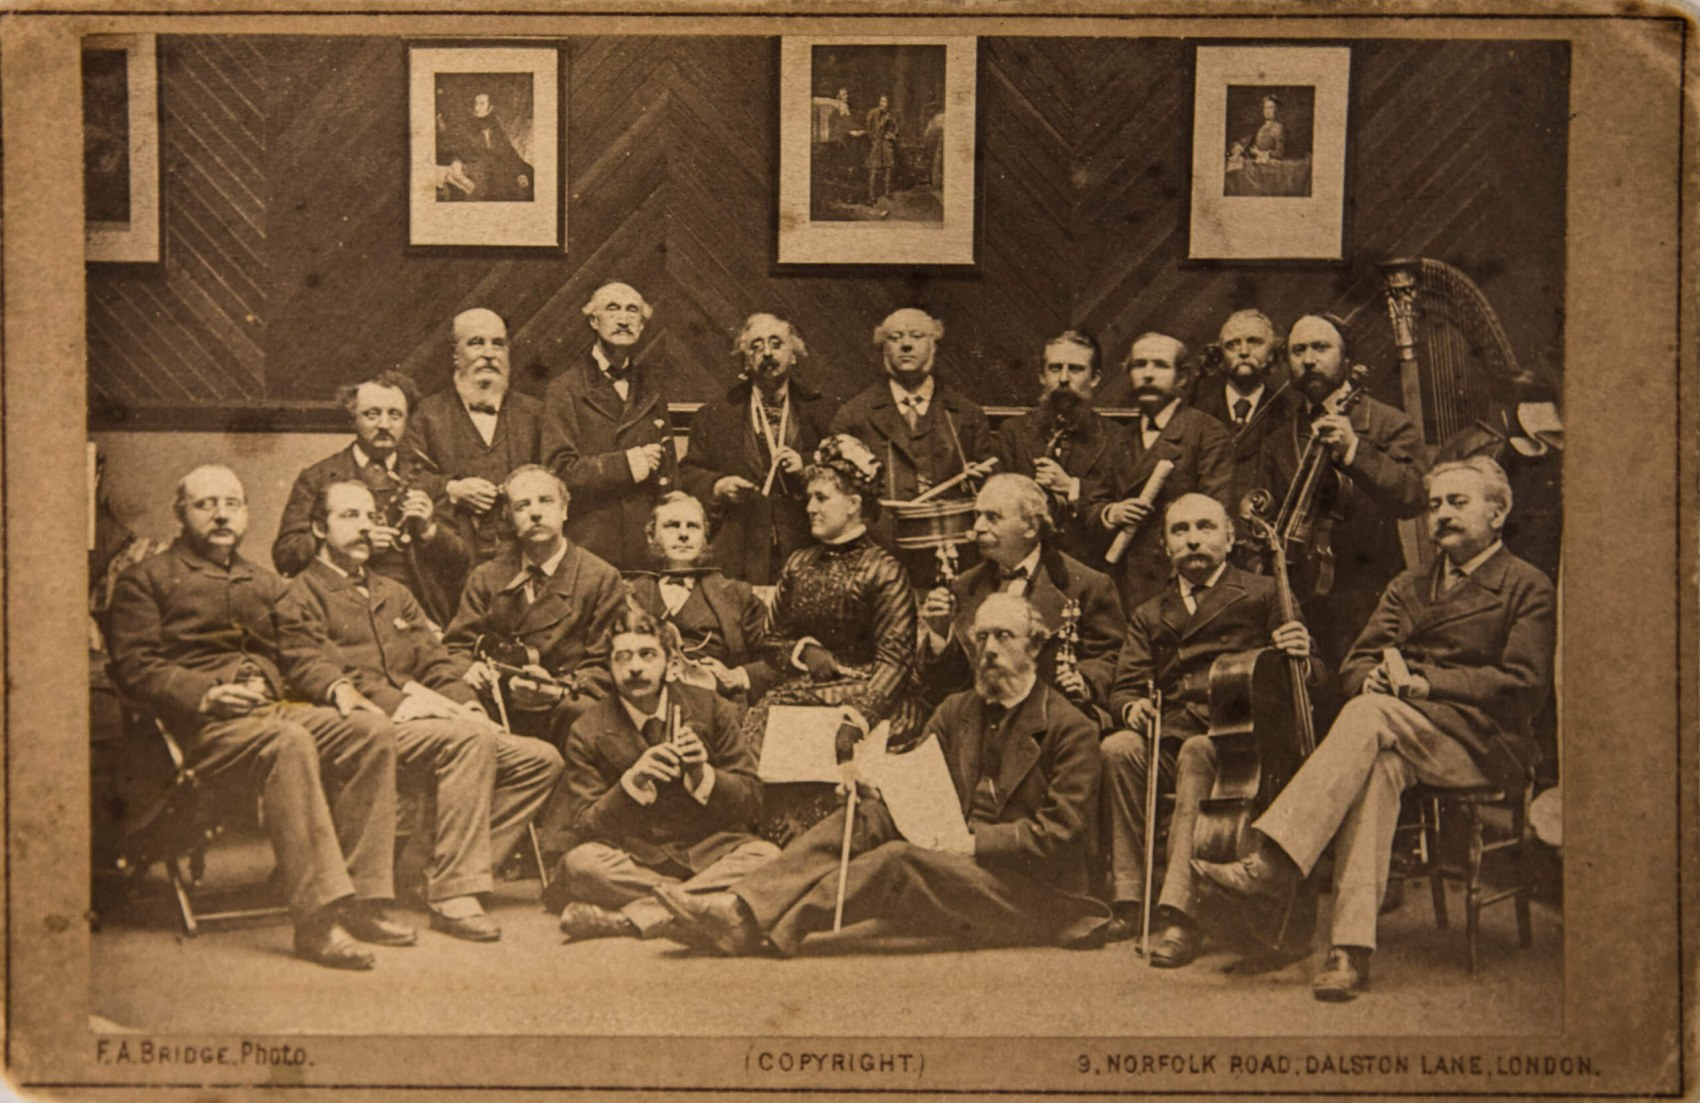 One of Stuart Harris-Logan's favourite items in the RCS archive is a  photograph from a performance of the Toy Symphony in London in 1880 signed by all the performers including Carl Rosa and Arthur Sullivan of Gilbert and Sullivan fame. They're pictured in a drawing room setting with everyone holding their instruments.